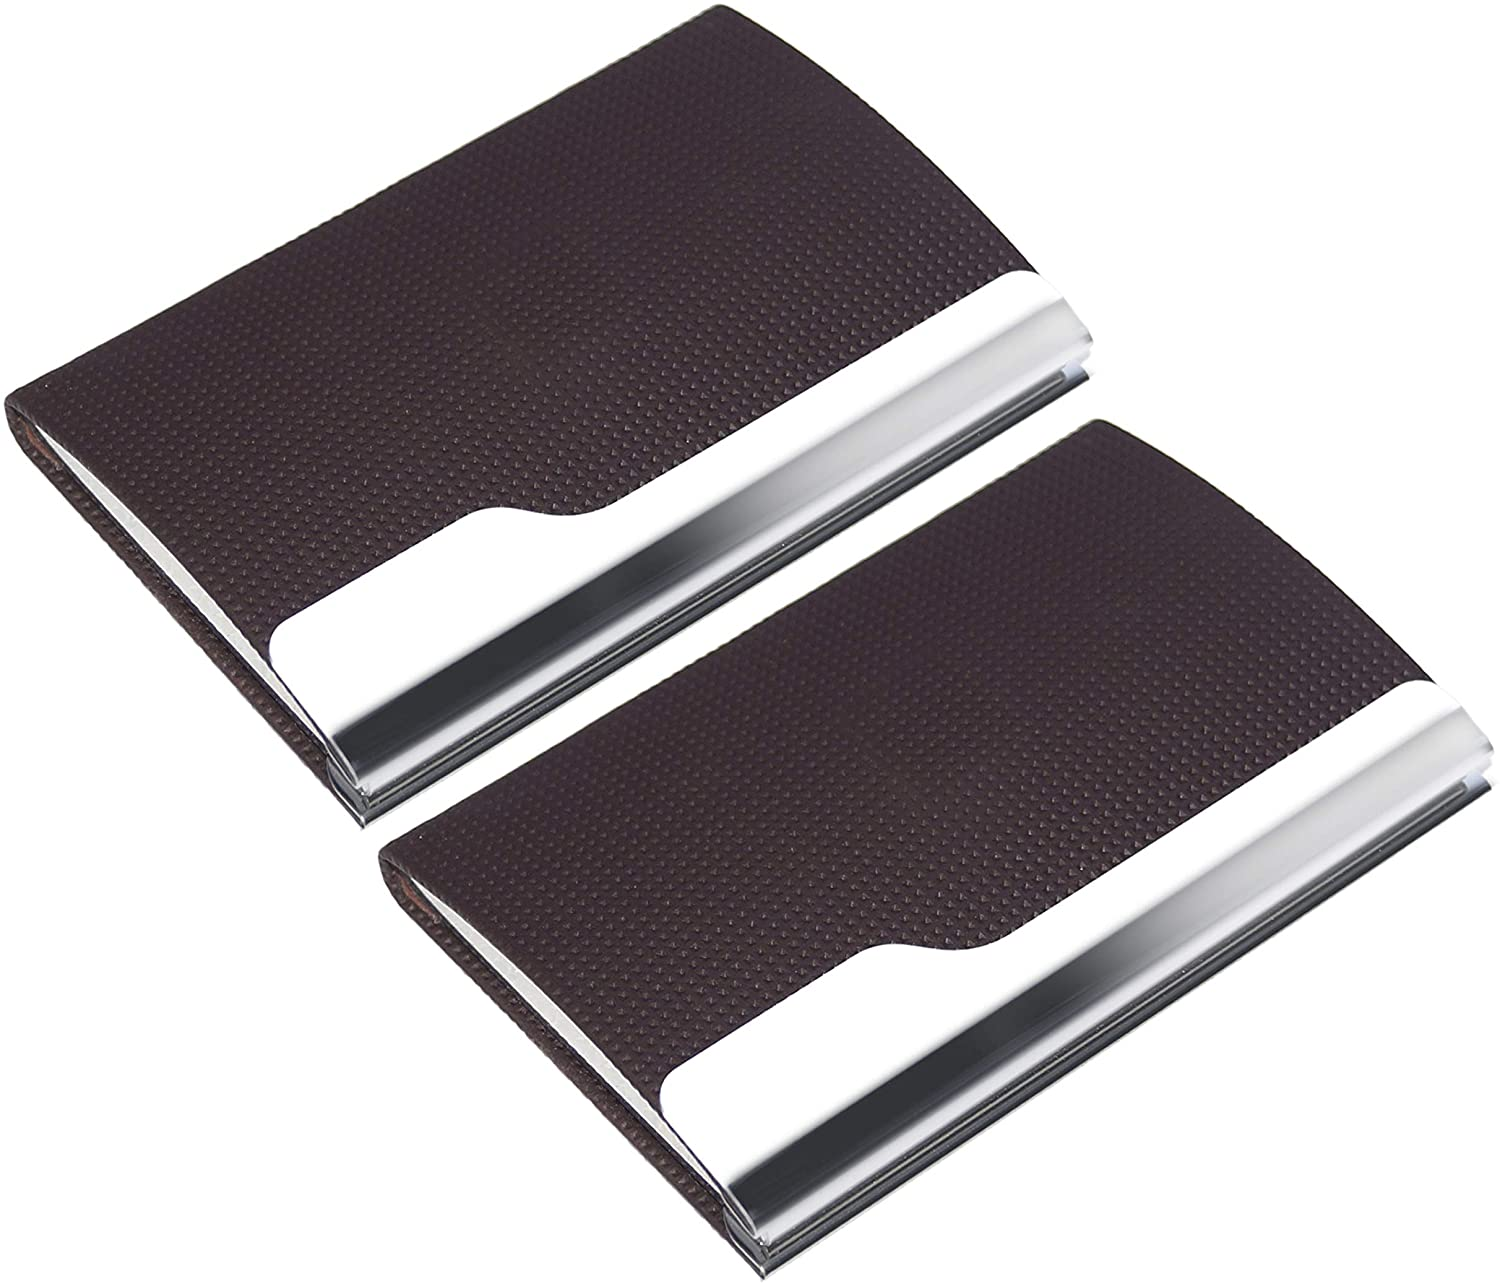 SAITECH IT 2Pack Professional Business Card/Visiting Card/Credit Card Holder Wallet with Magnetic Closure for Men and Women